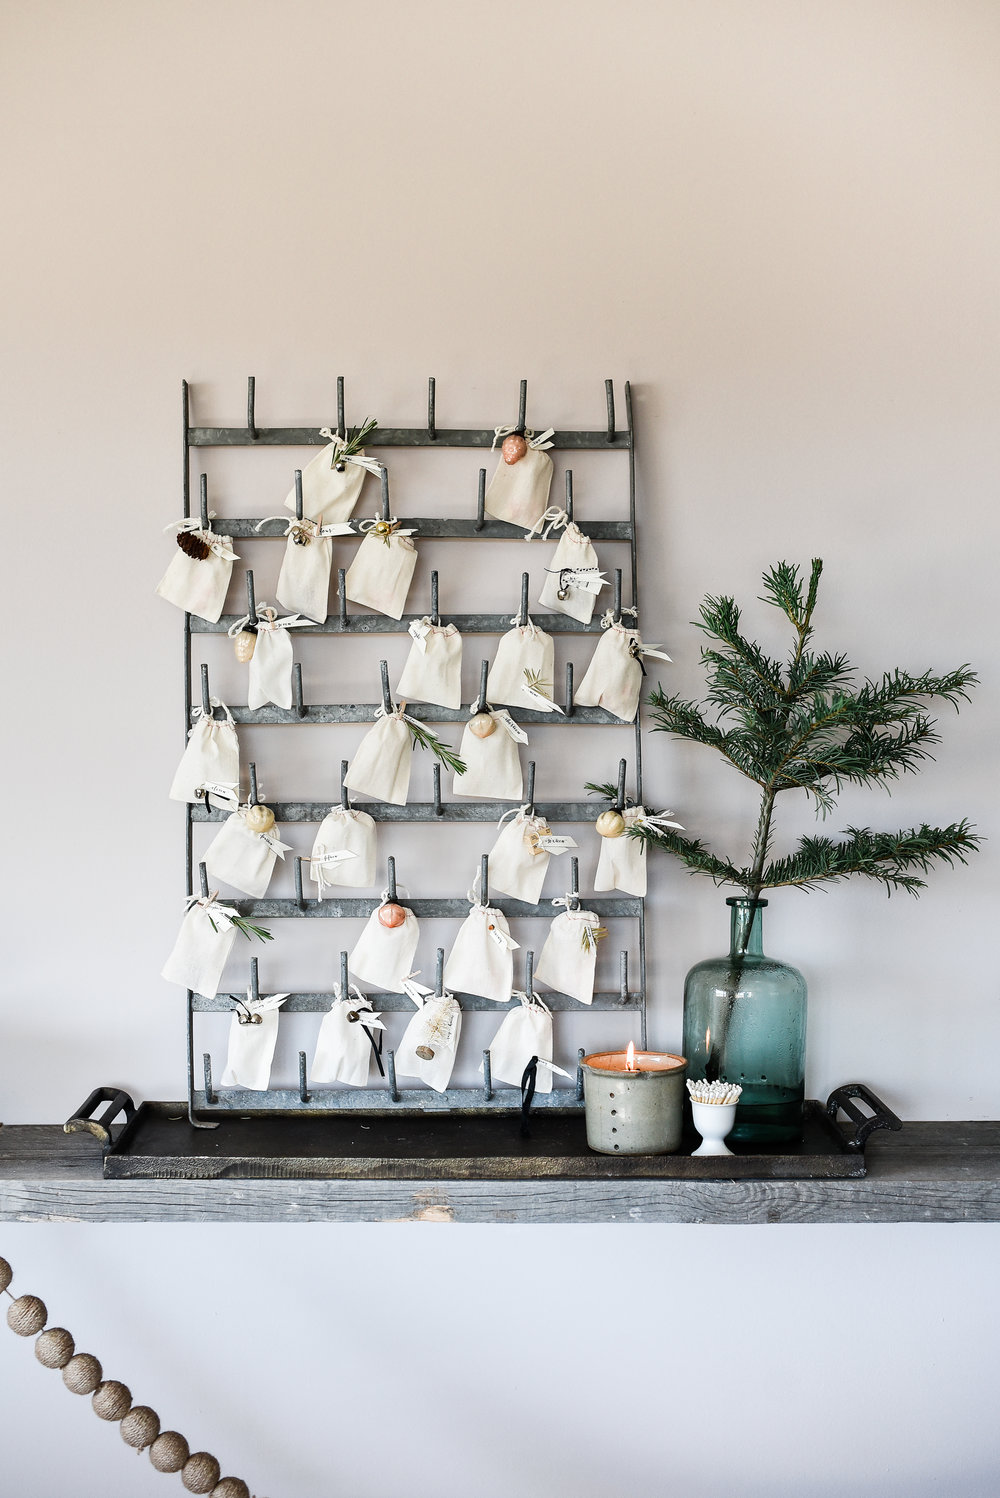 DIY Christmas Advent Calendar ideas from boxwoodavenue.com | #farmhousechristmas #christmasdecorating